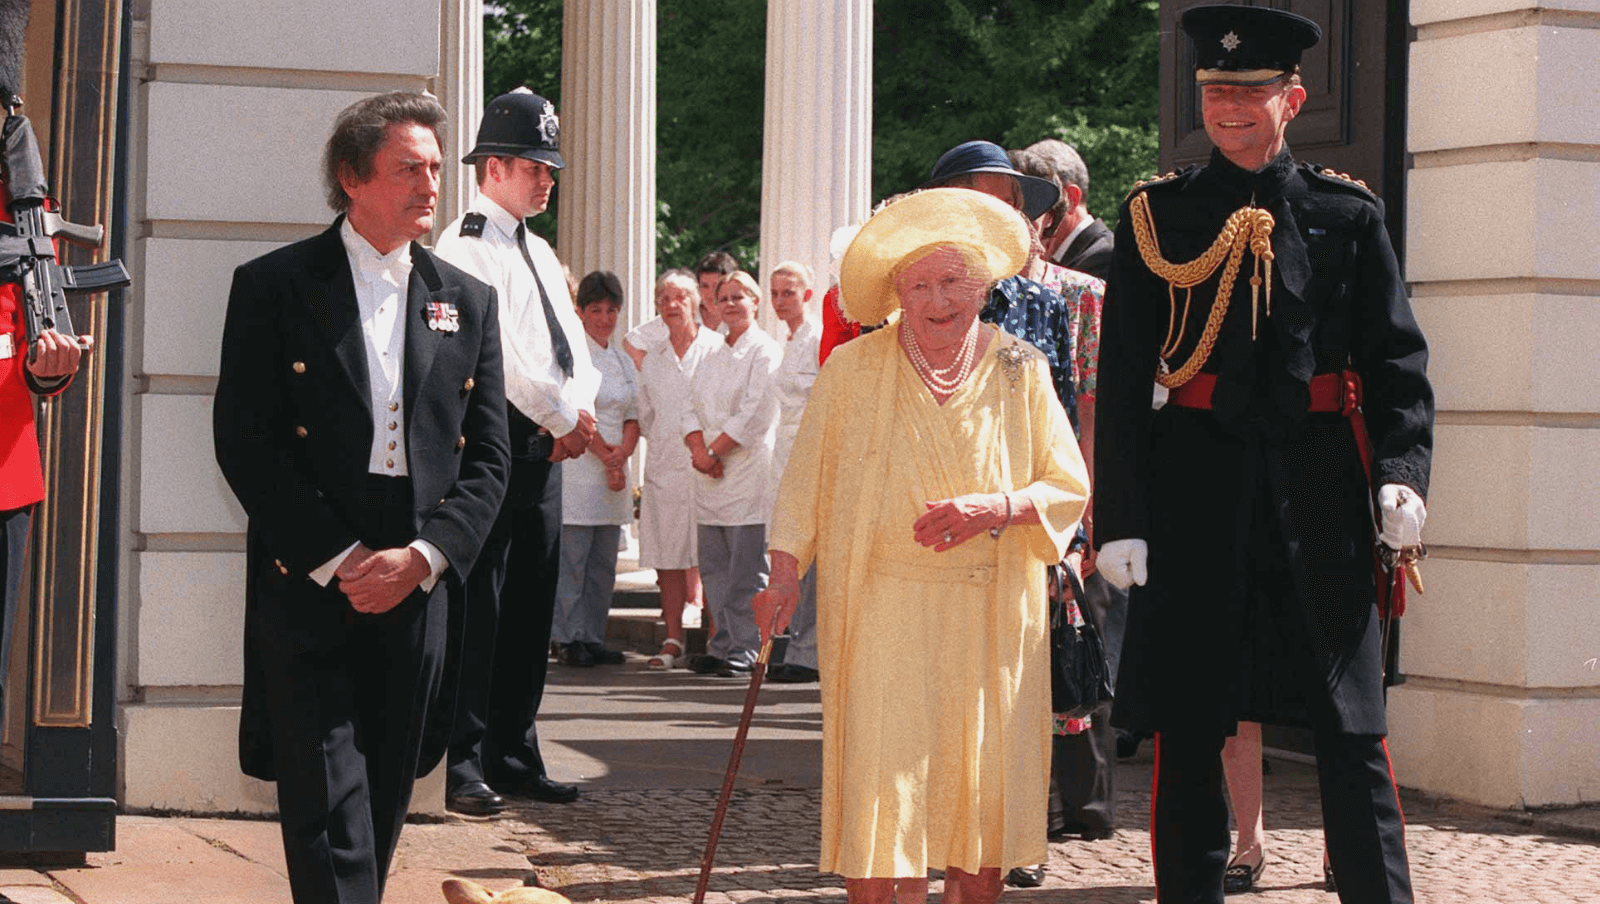 The Queen Mother: A Woman of her Century